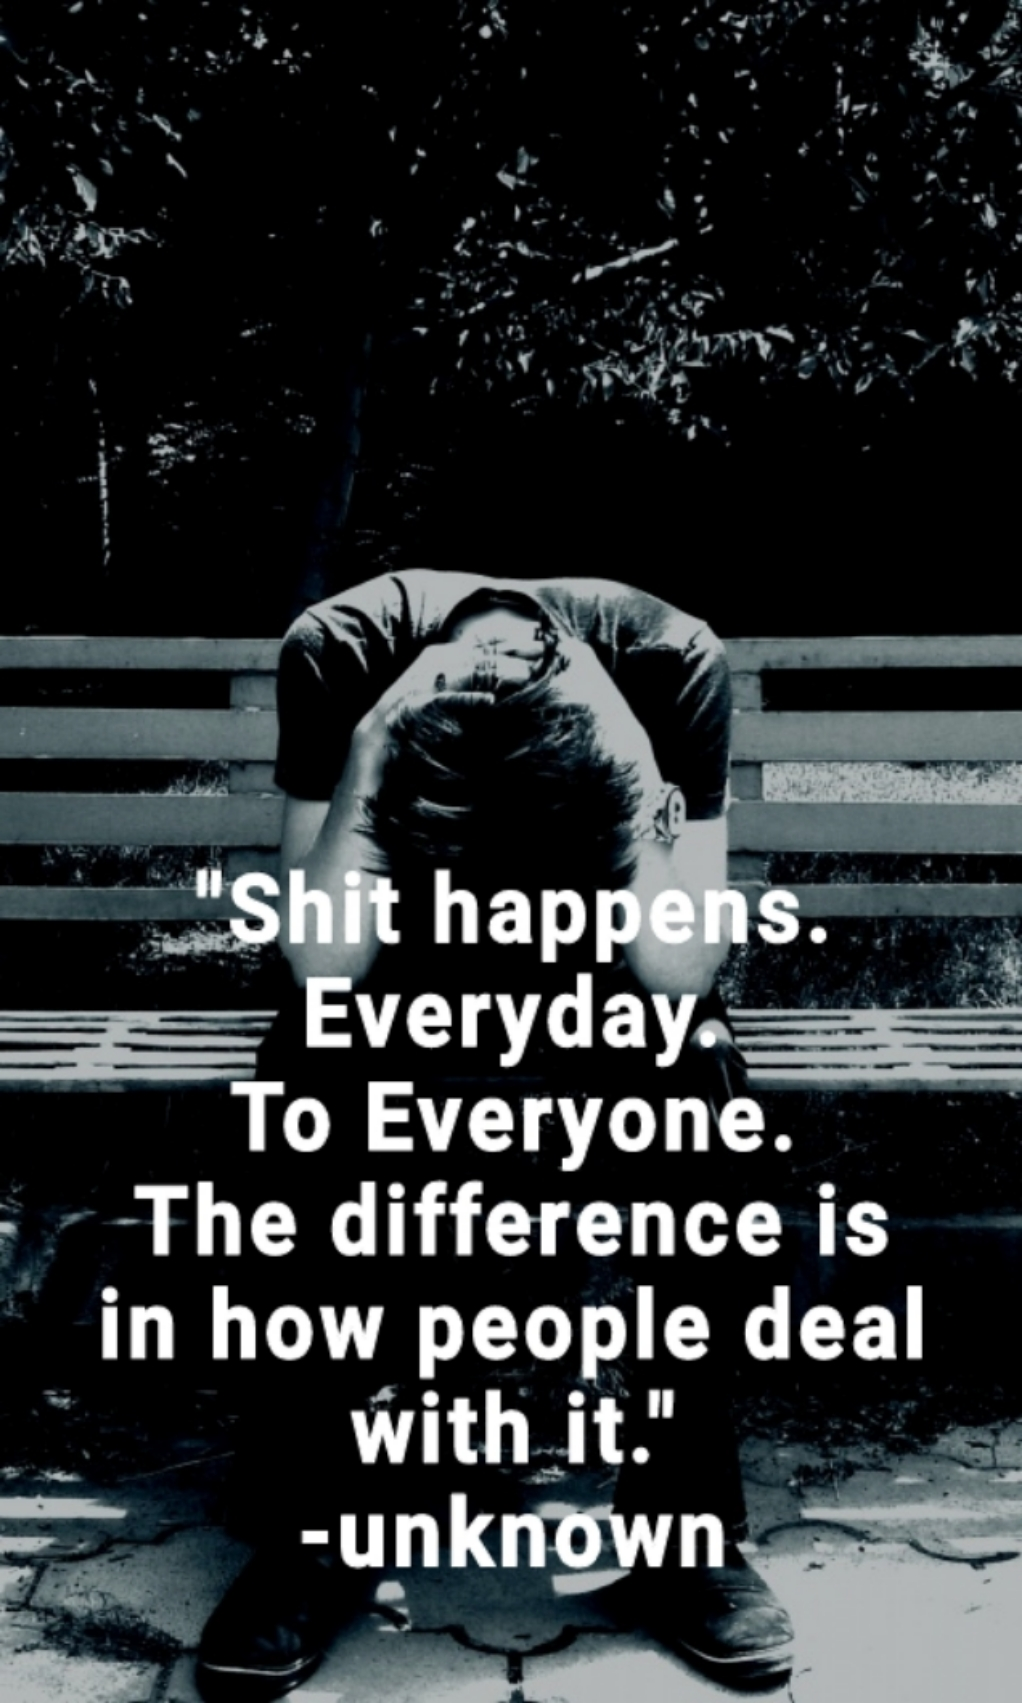 """Shit happens. Everyday. To Everyone. The difference is in how people deal with it."" -unknown [1022×1703]"